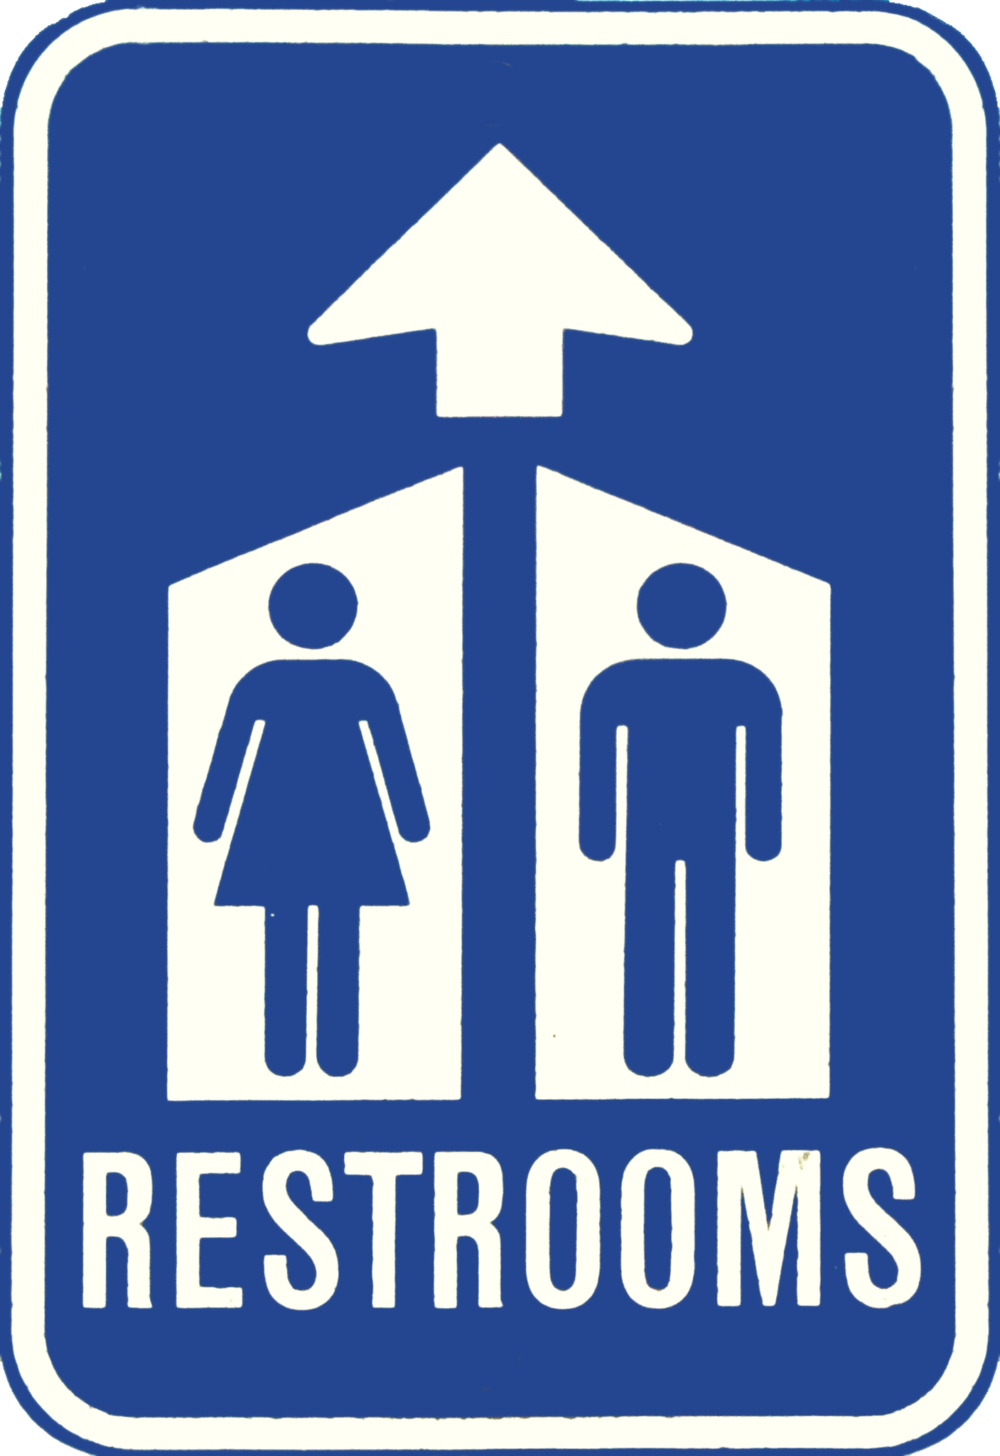 Restrooms Arrow.png